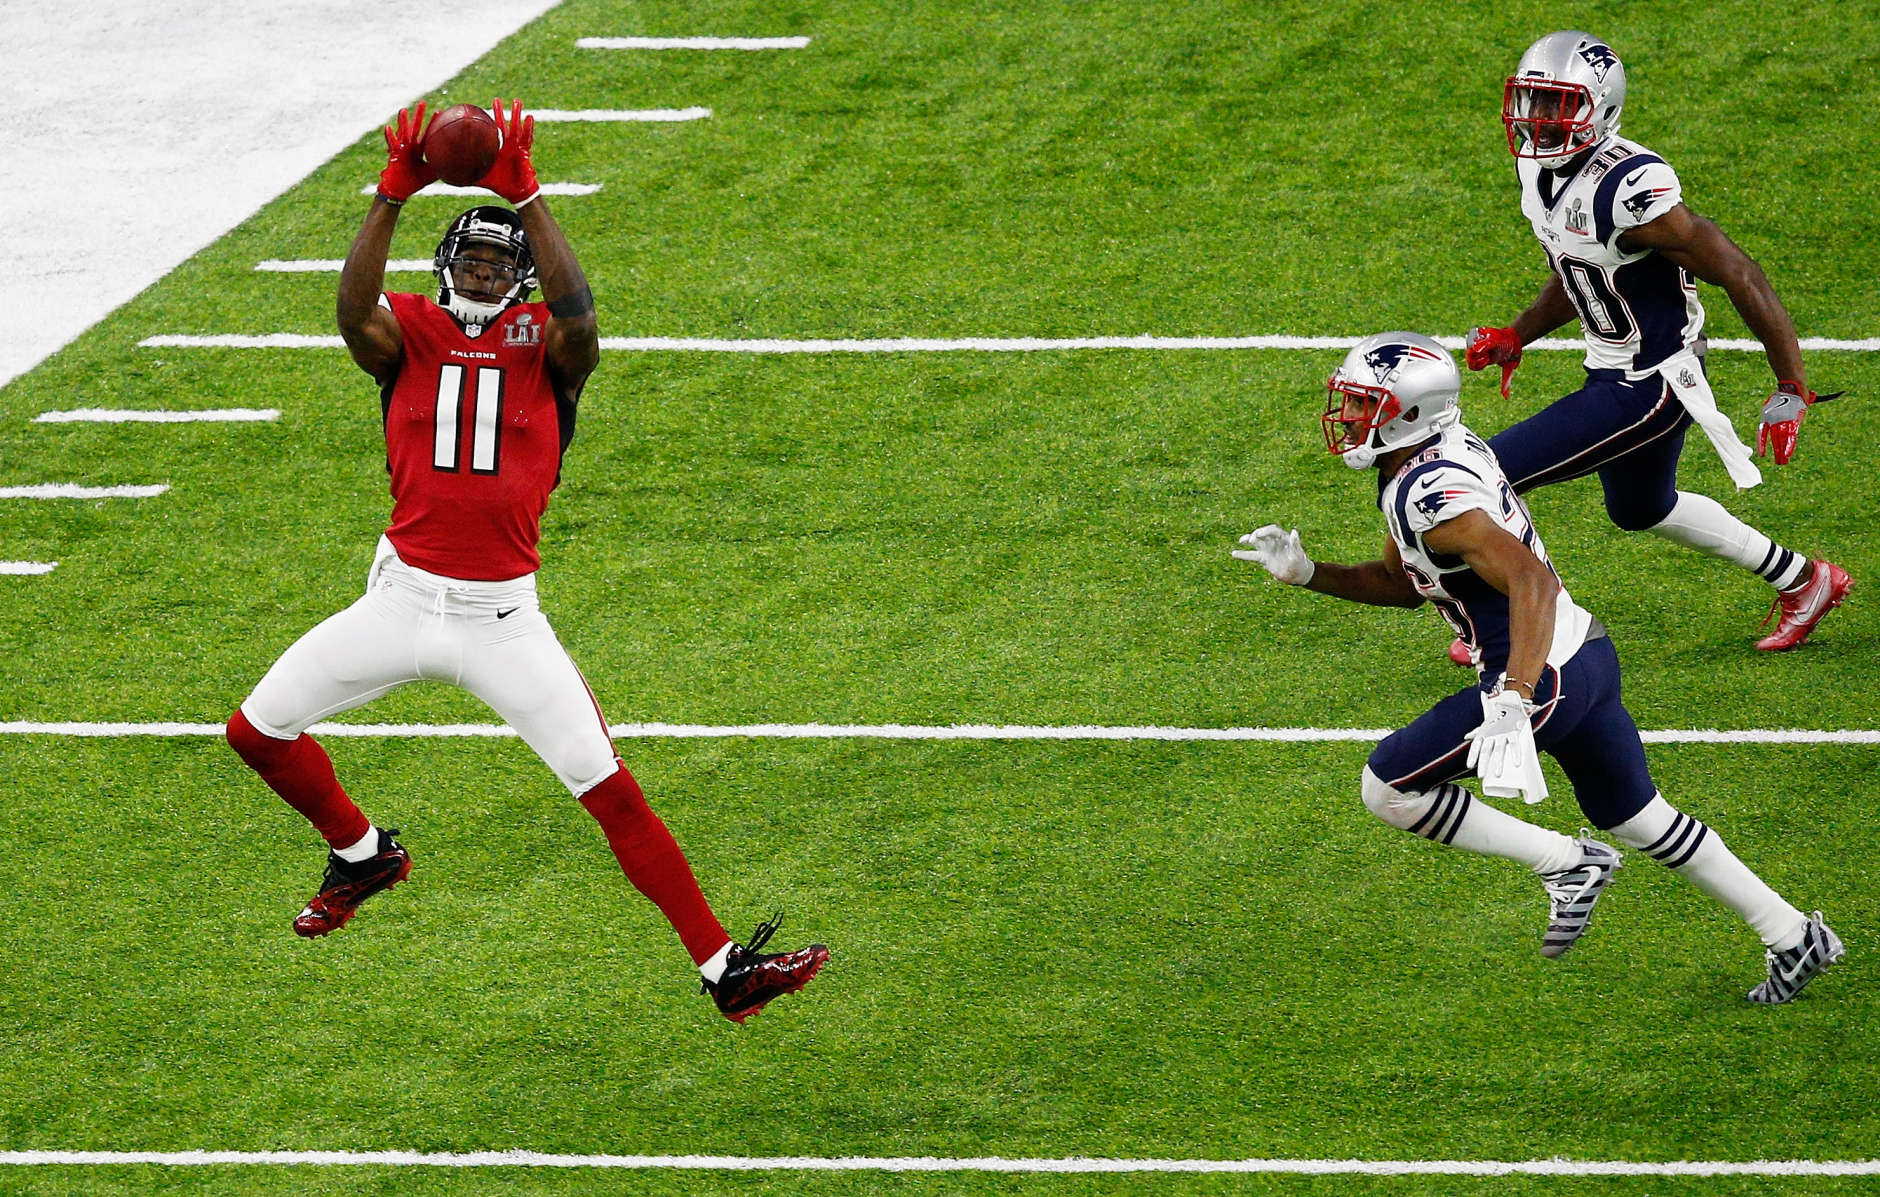 HOUSTON, TX - FEBRUARY 05:  Julio Jones #11 of the Atlanta Falcons makes a catch against the New England Patriots in the first half during Super Bowl 51 at NRG Stadium on February 5, 2017 in Houston, Texas.  (Photo by Bob Levey/Getty Images)